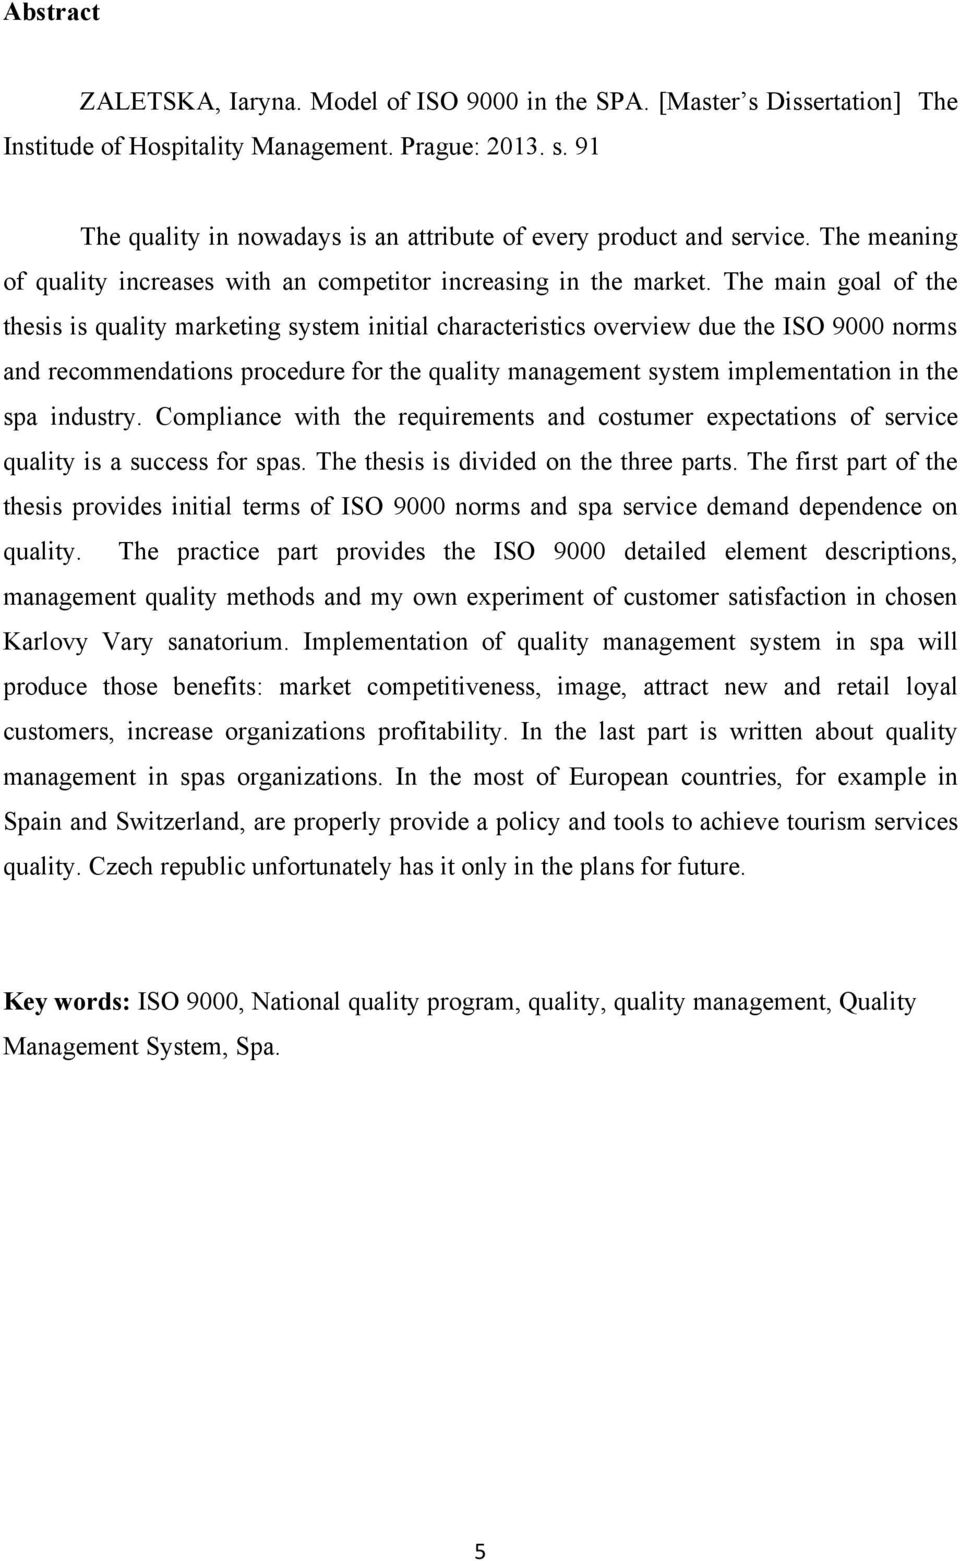 Dissertation service quality management